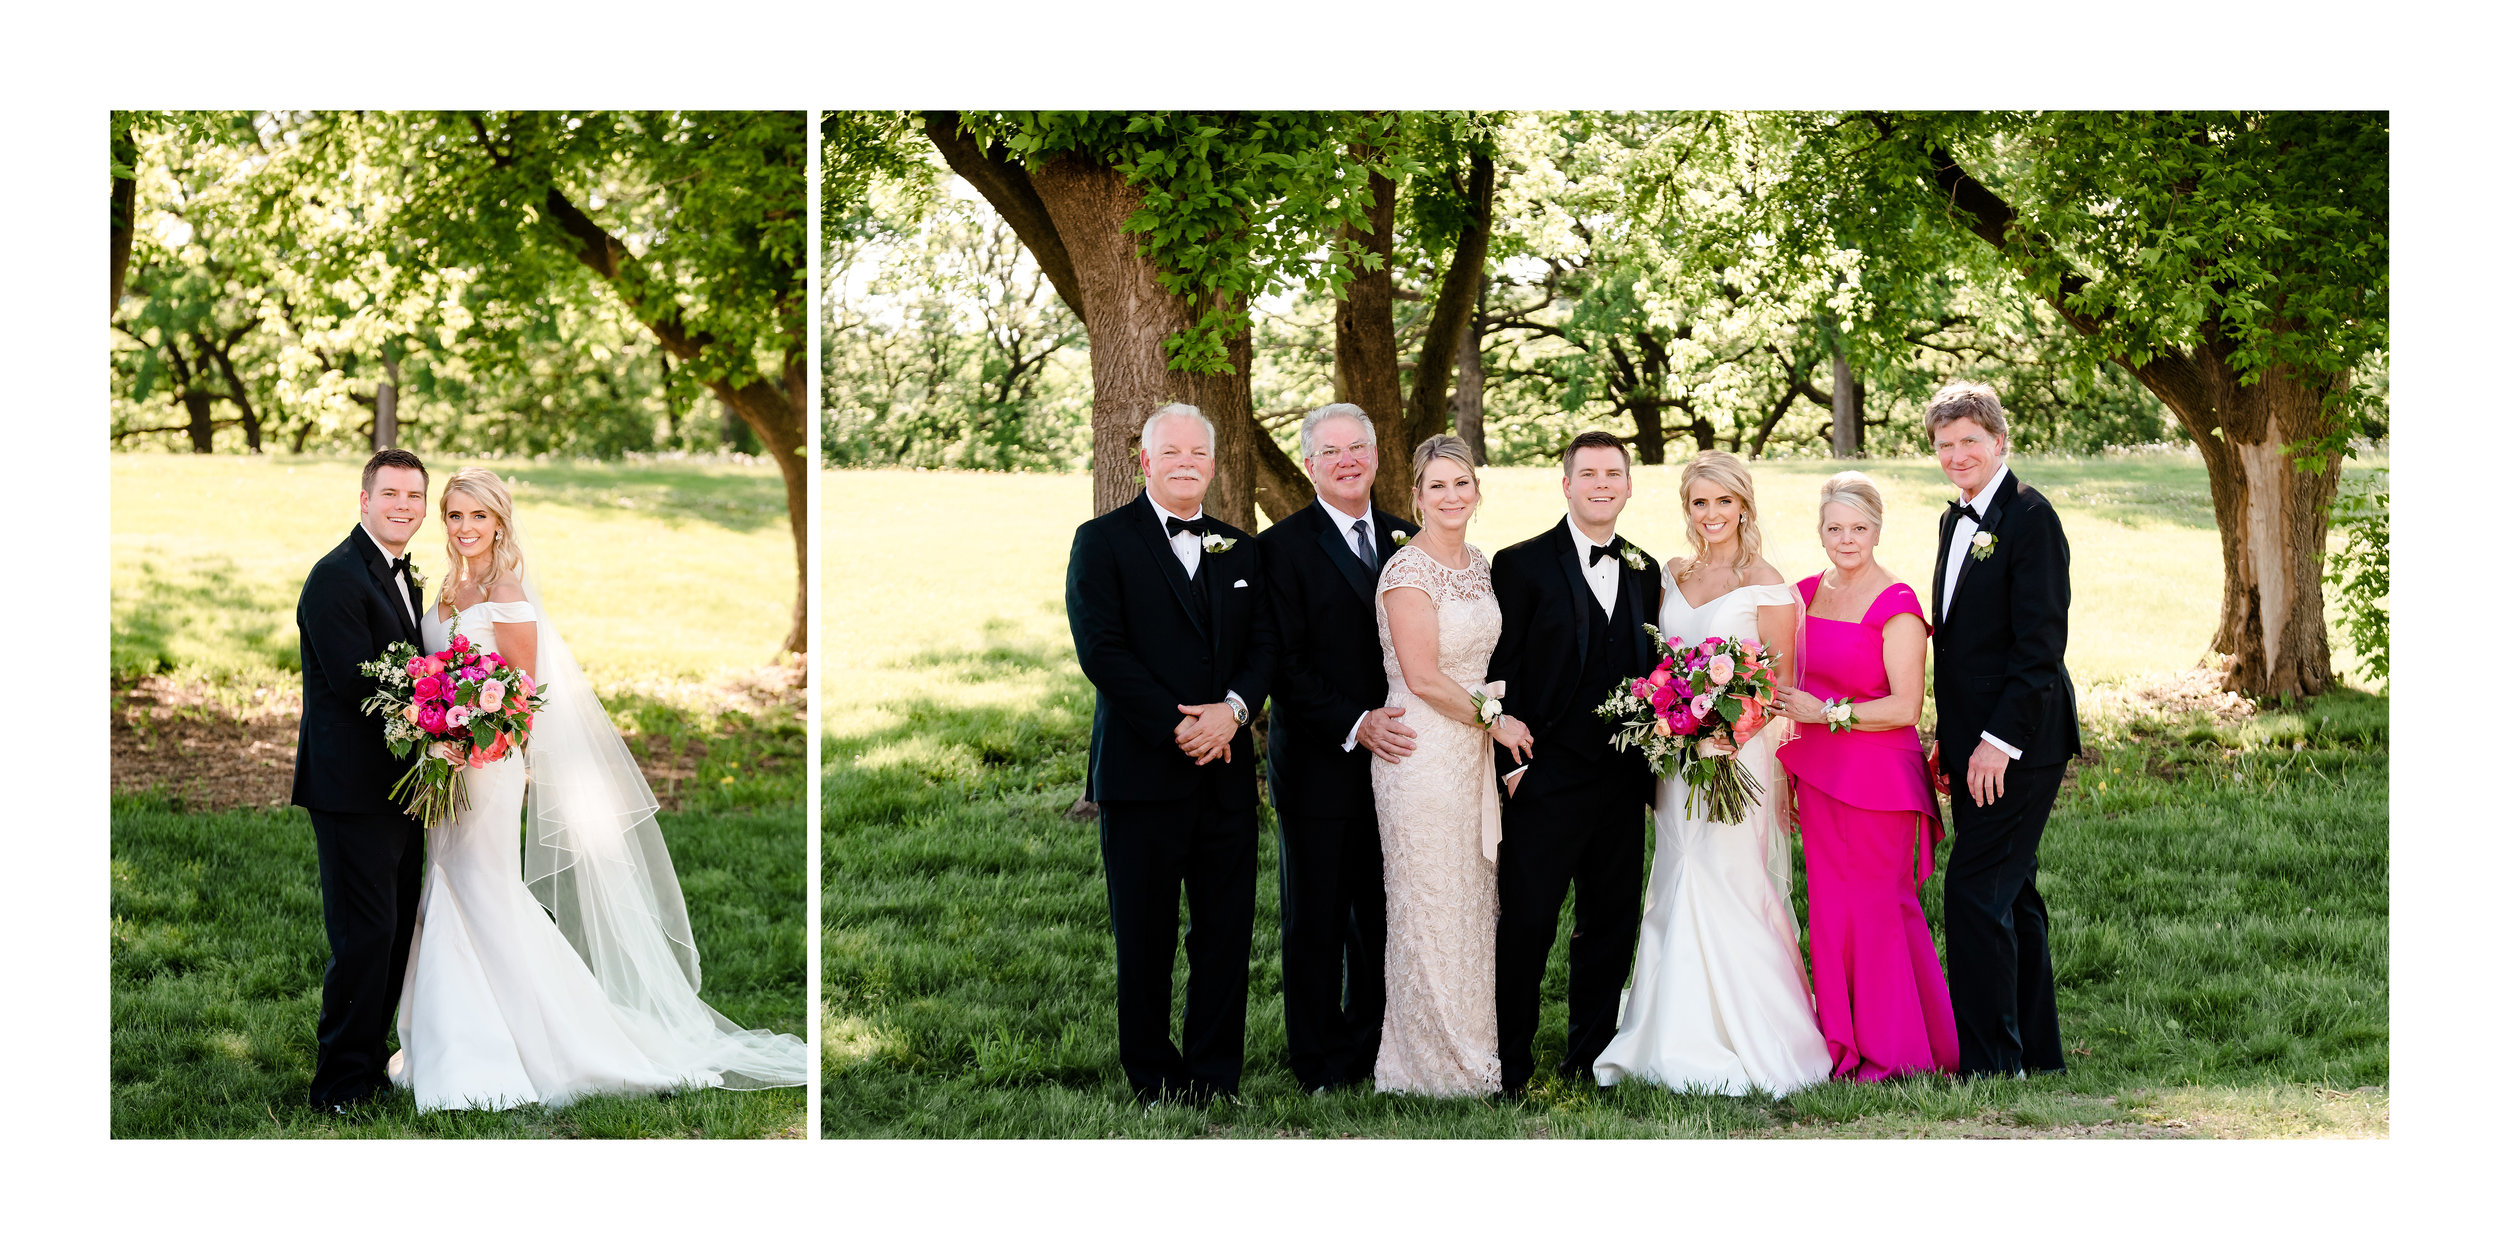 Amanda + Justin - Wedding Album_18.jpg